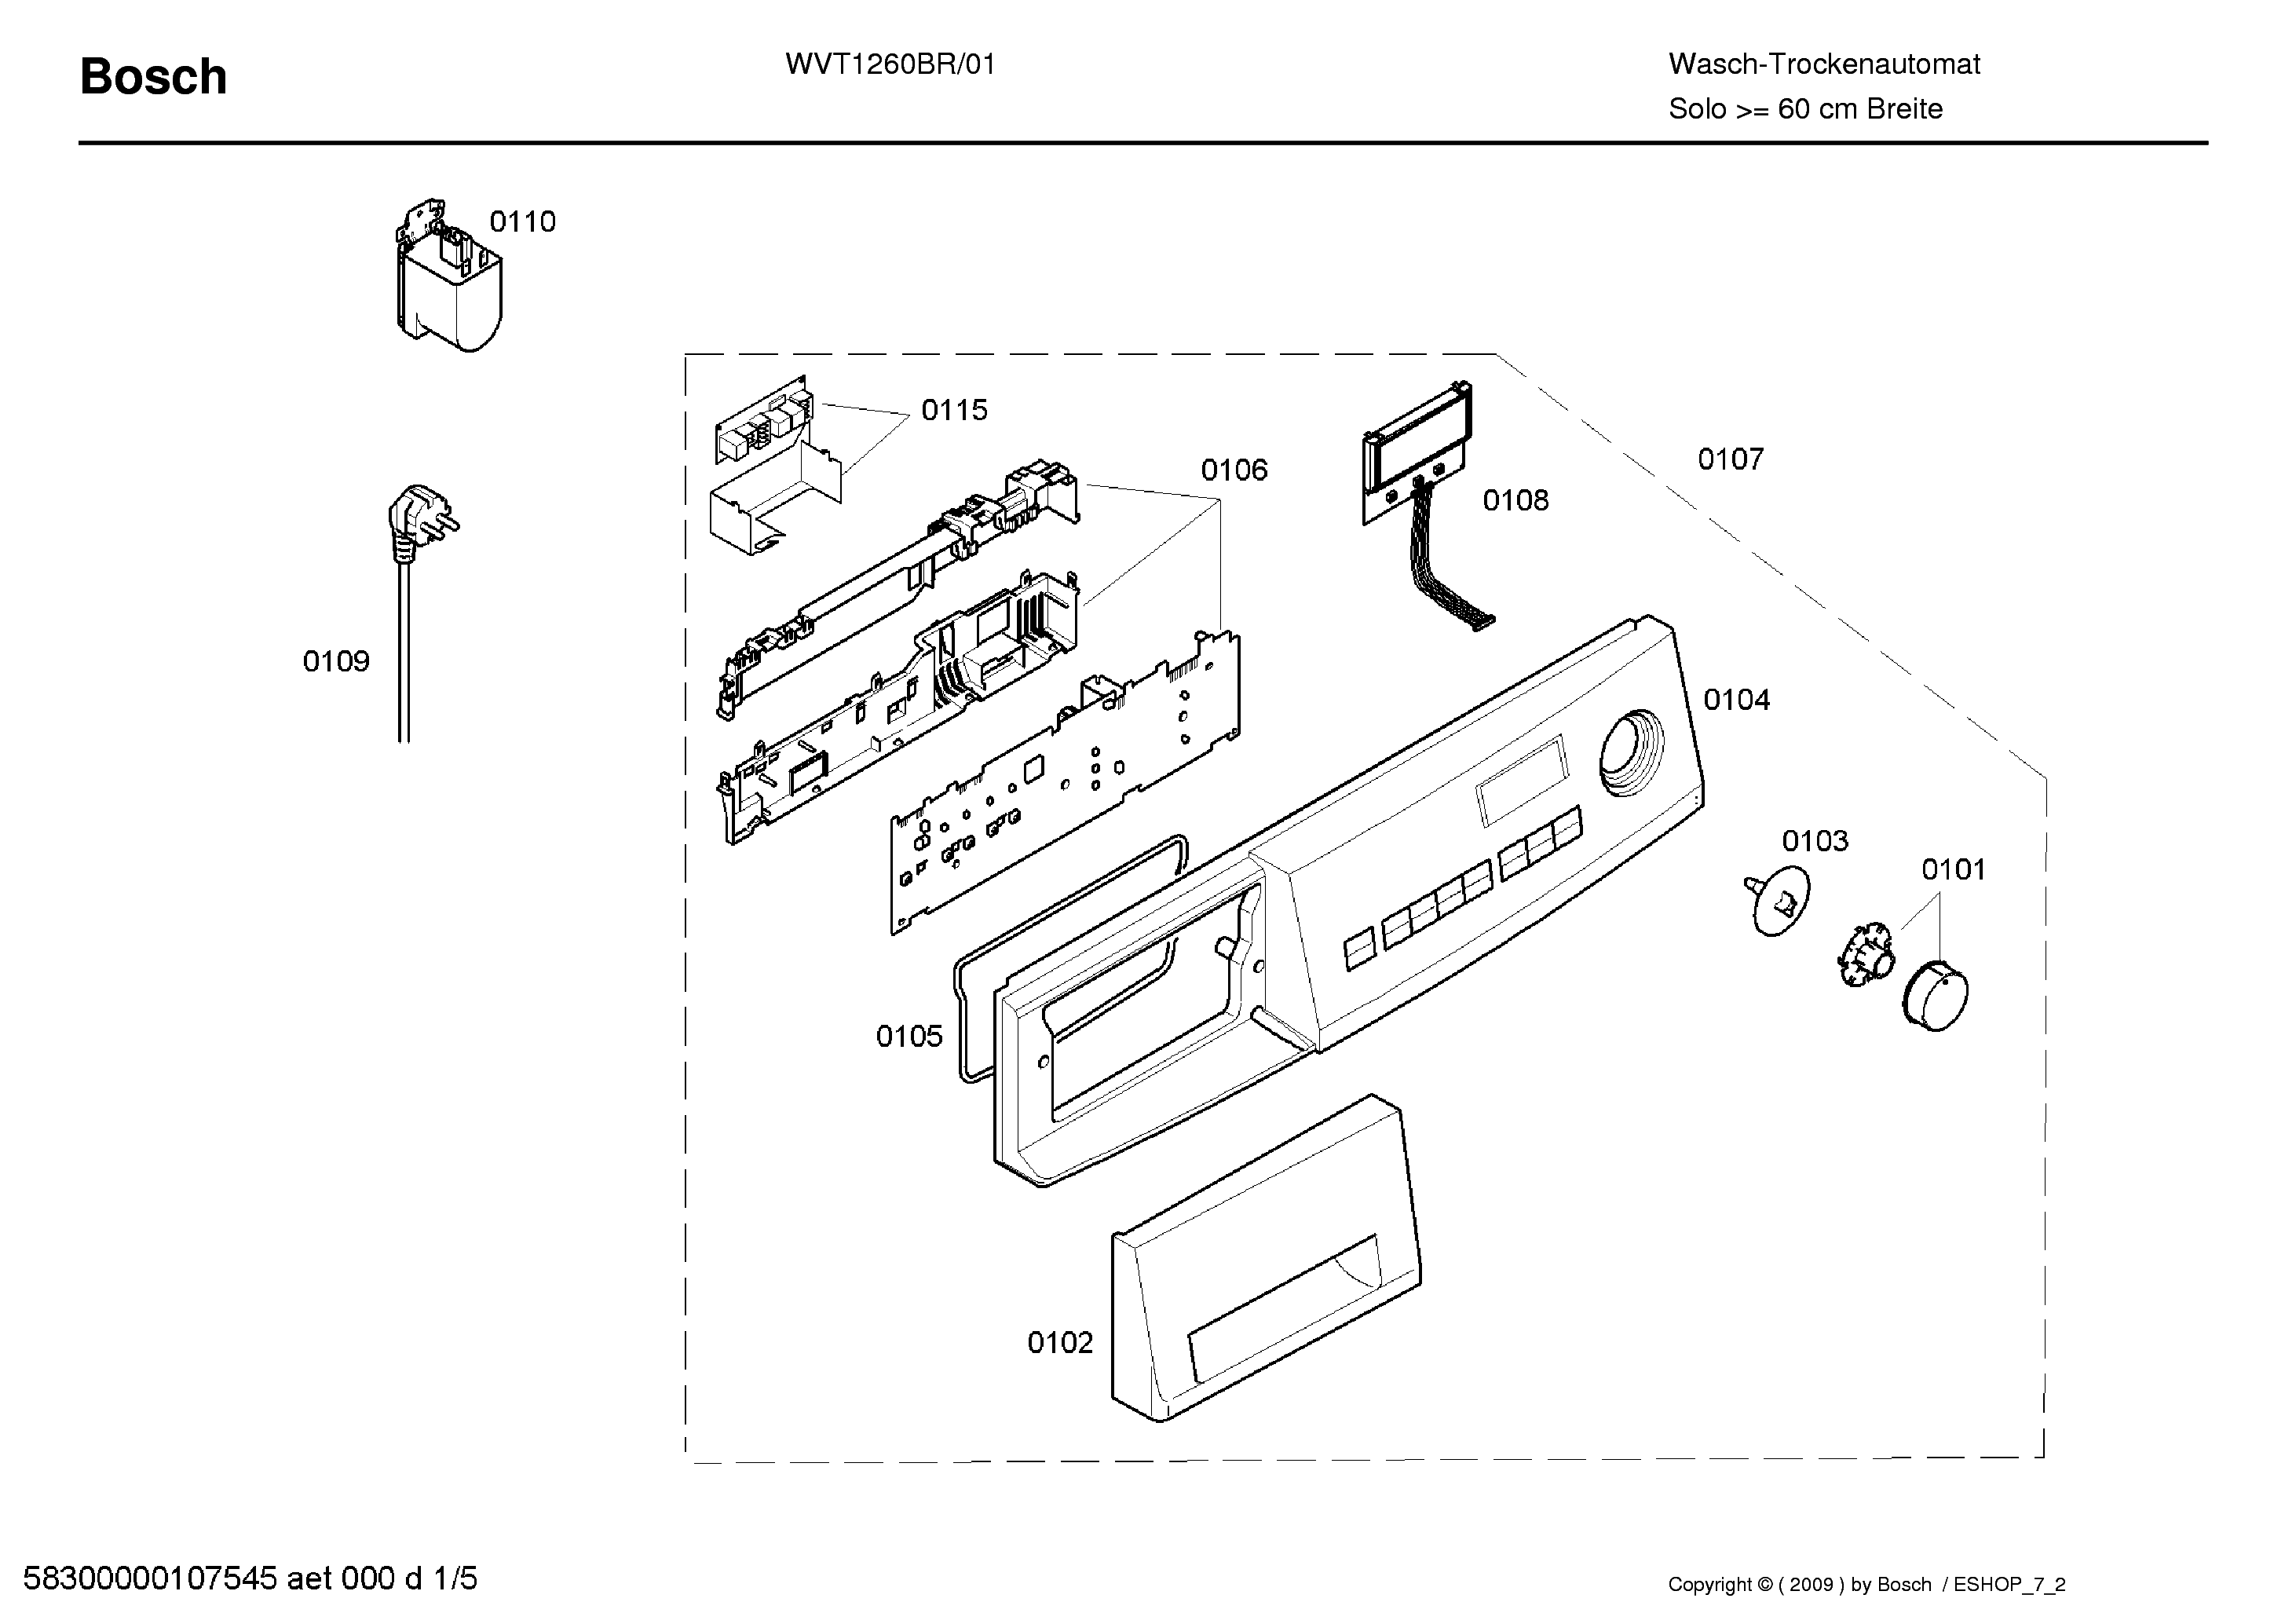 BOSCH WVT1260BR01 Service Manual download, schematics